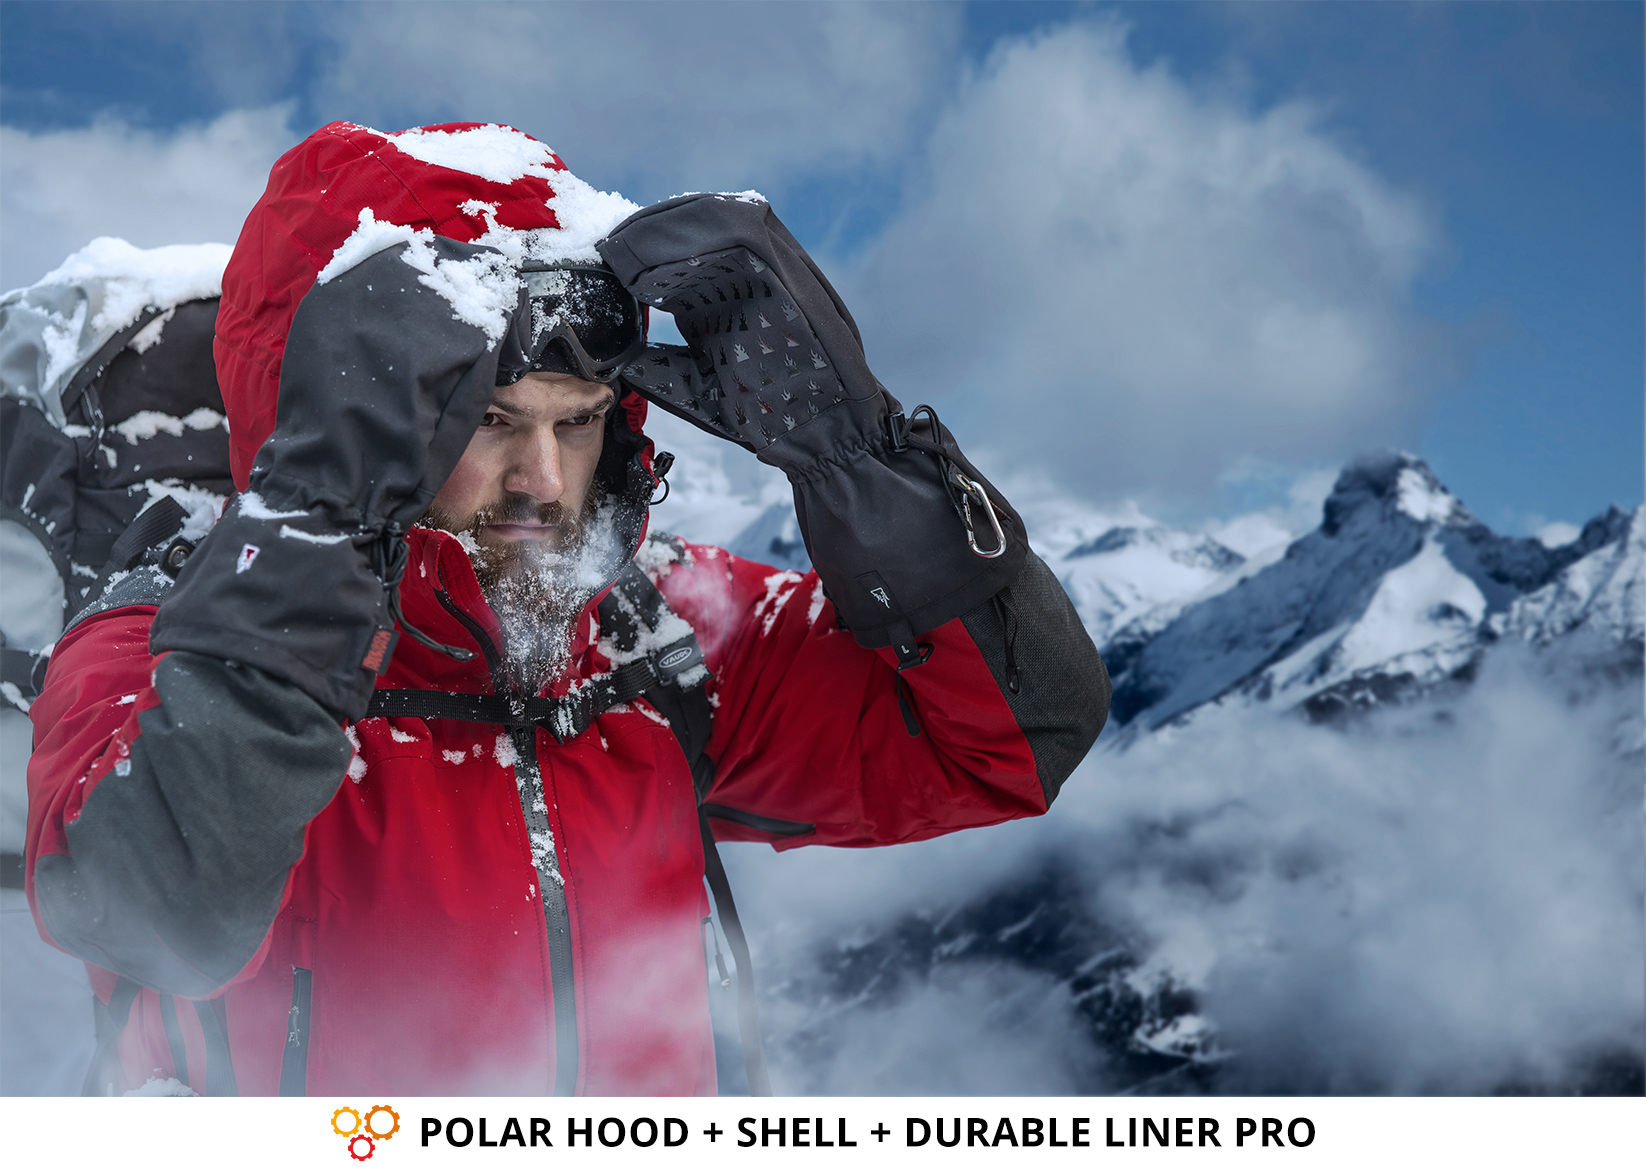 Photography Gloves for Extreme Cold: POLAR HOOD + SHELL + DURABLE LINER PRO from THE HEAT COMPANY